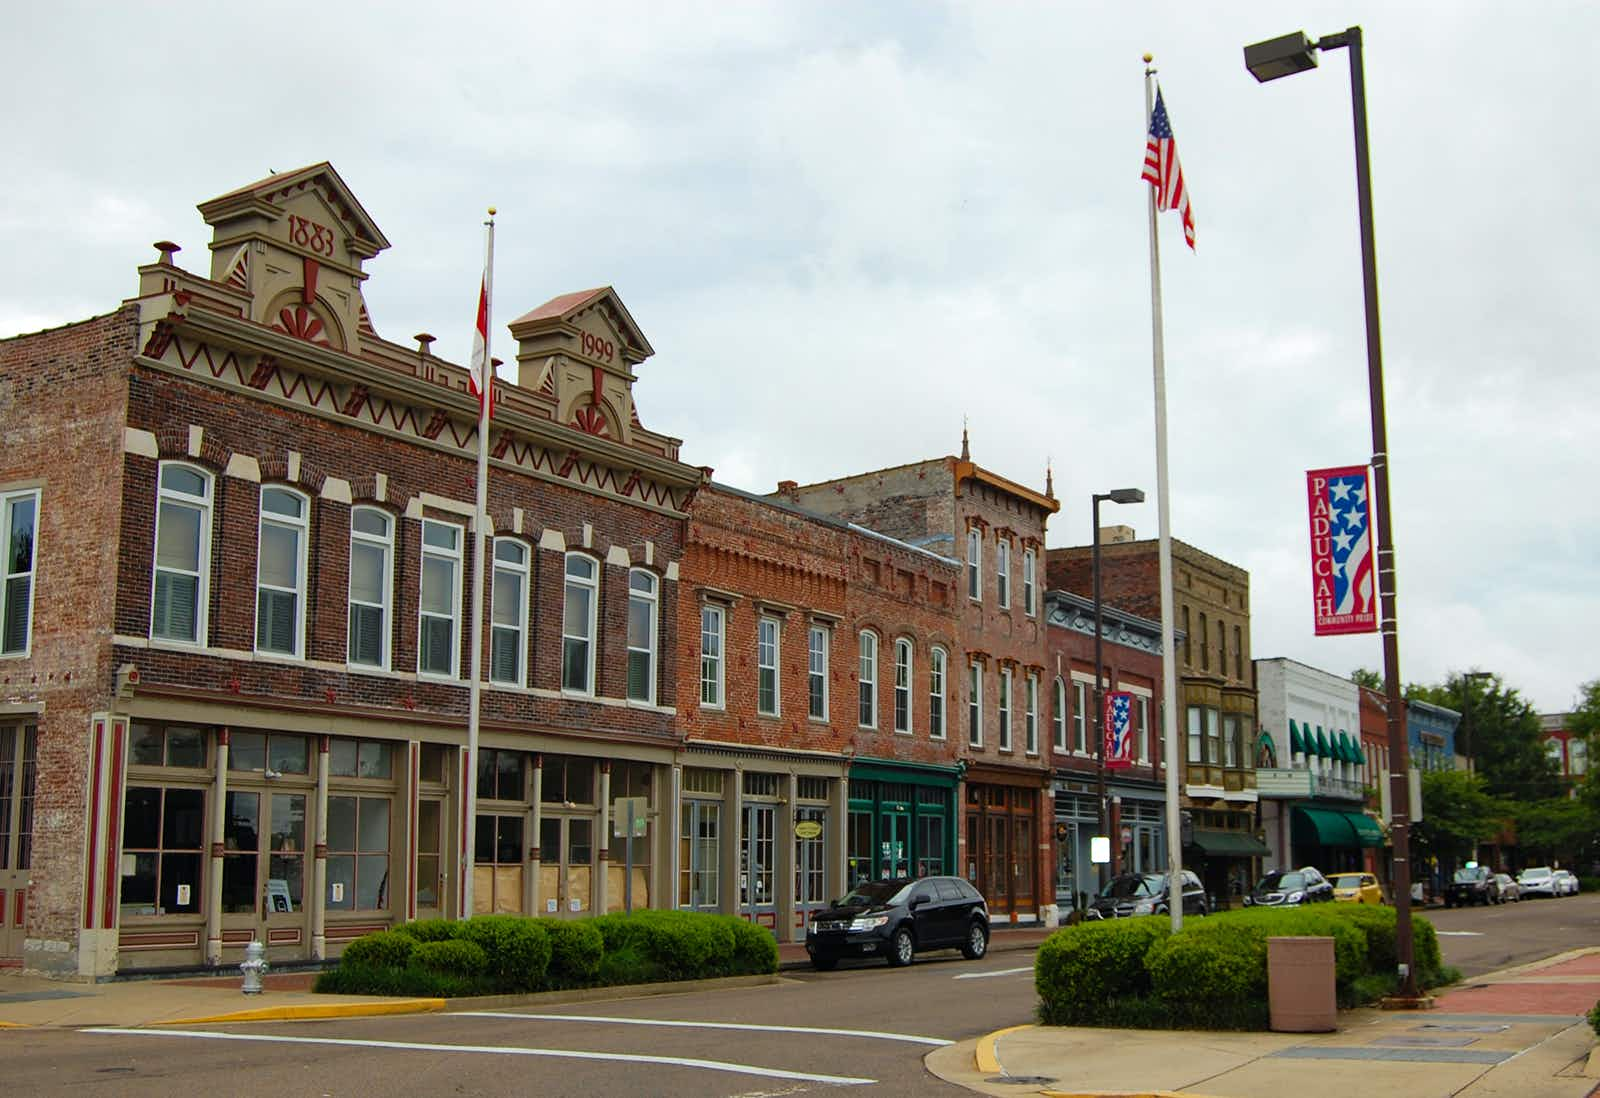 Angle shot of 19th-century commercial brick buildings lining the main street of Paducah, Kentucky, with an American flag in the foreground and clouds overhead